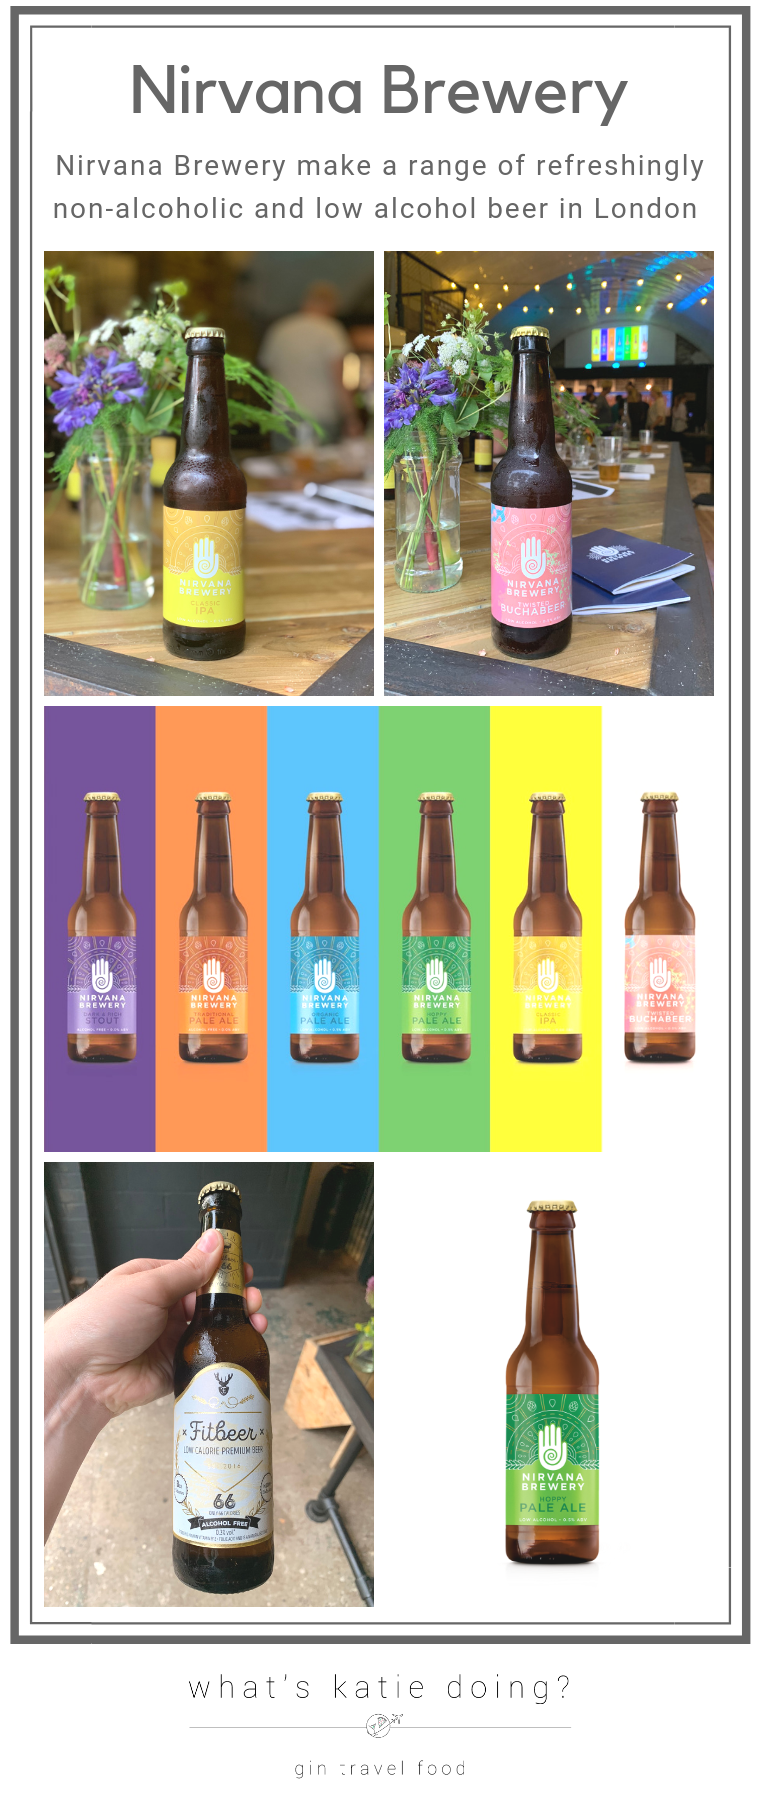 Nirvana Brewery - refreshingly low alcohol beer made in London